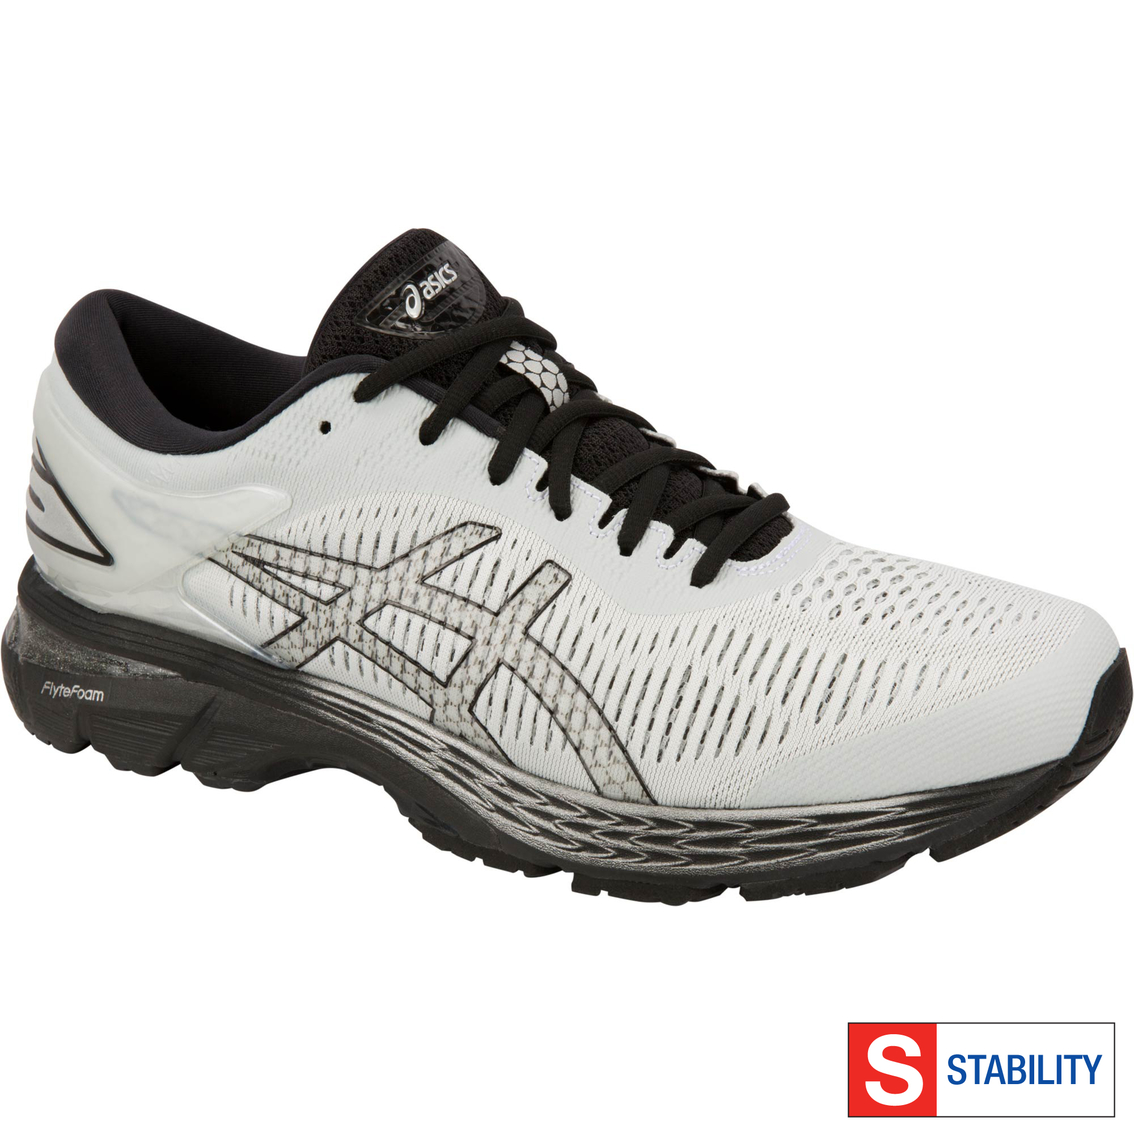 Chaussures | de 8372 course Asics Homme Gel Kayano 25 course | d258356 - kyomin.website